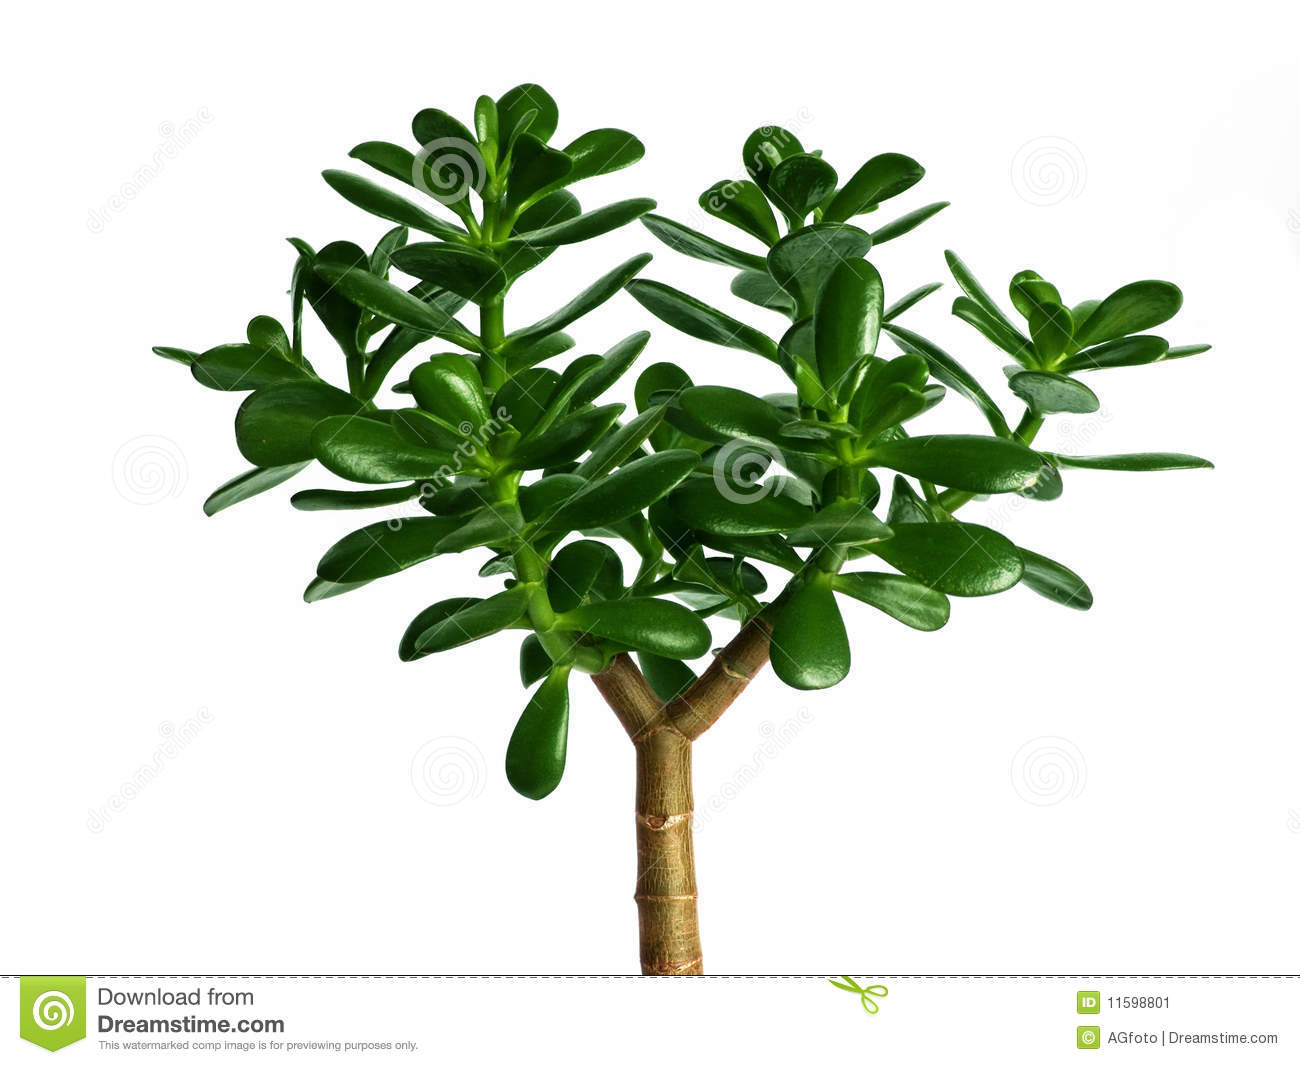 ... plant - Crassula Ovata or Money tree. Isolated over white background